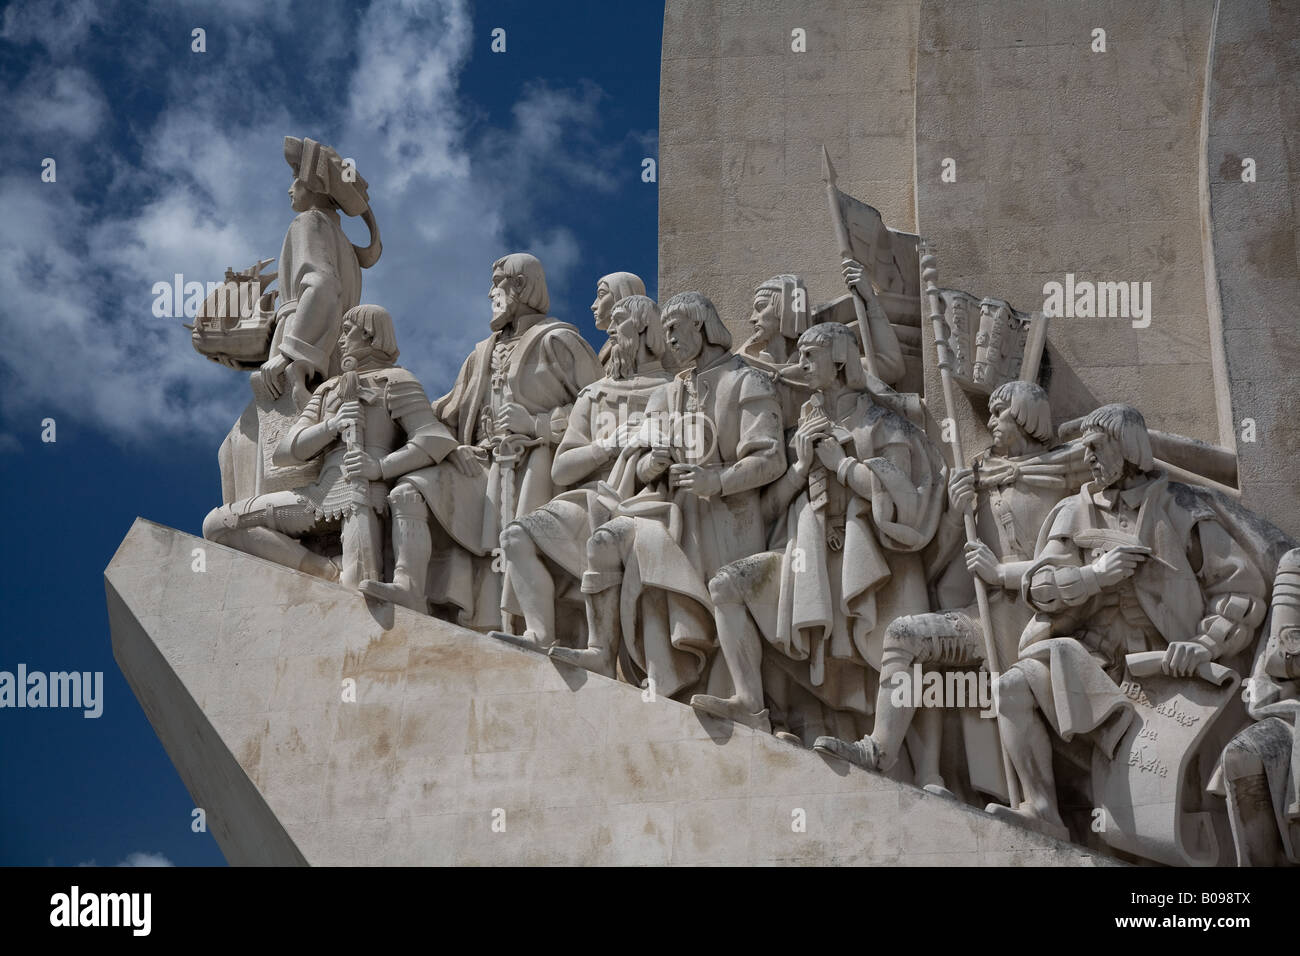 Monument to the Discoveries, located in the Belem District of Lisbon, Portugal. - Stock Image